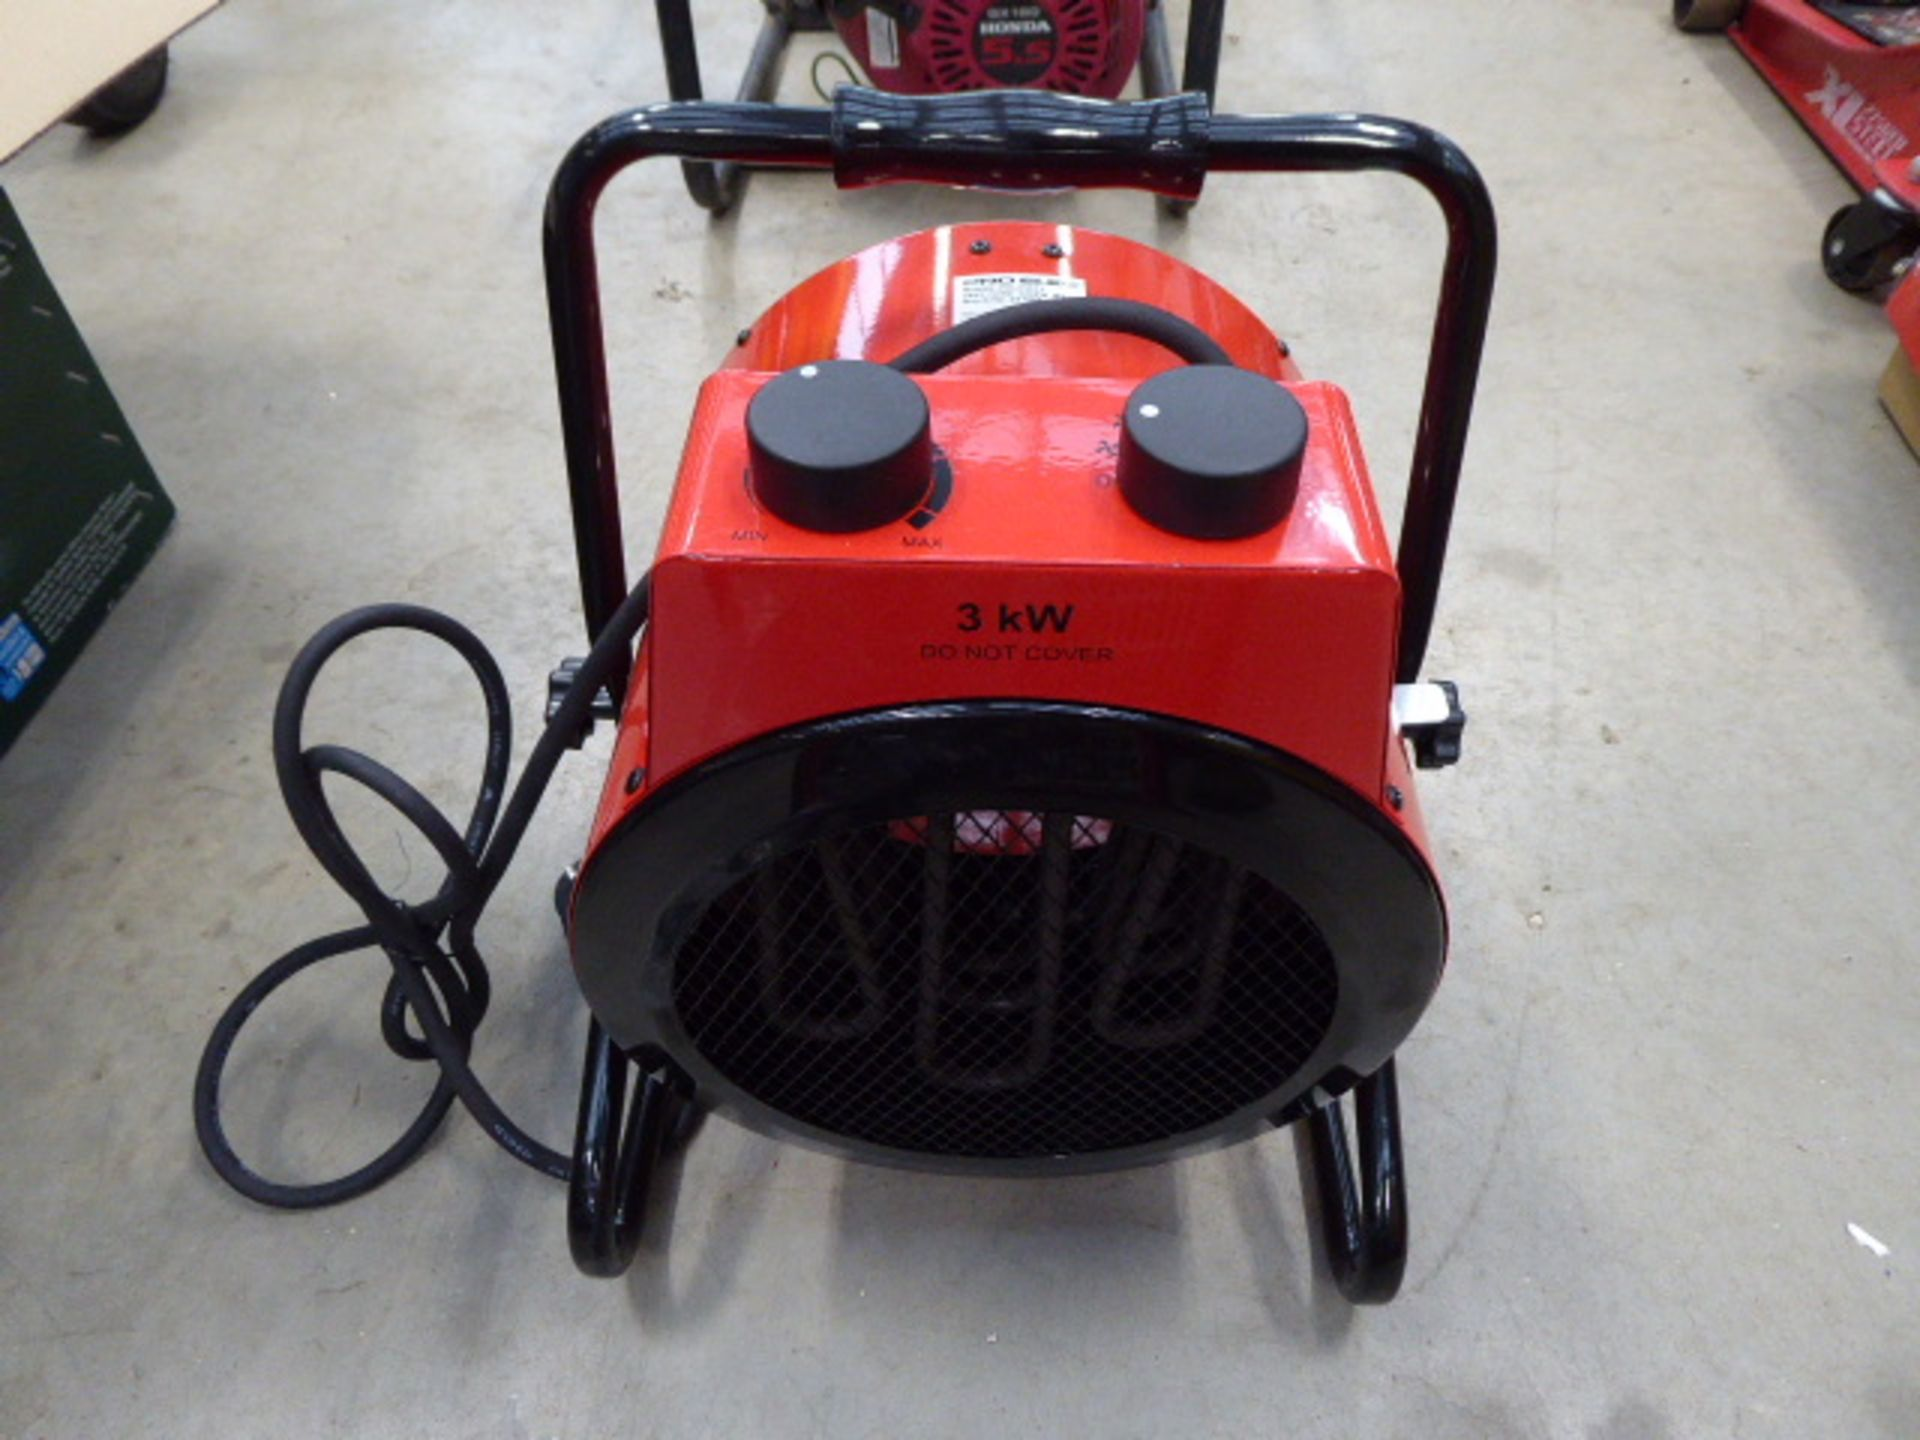 1 square and 1 round red electric heater - Image 3 of 3